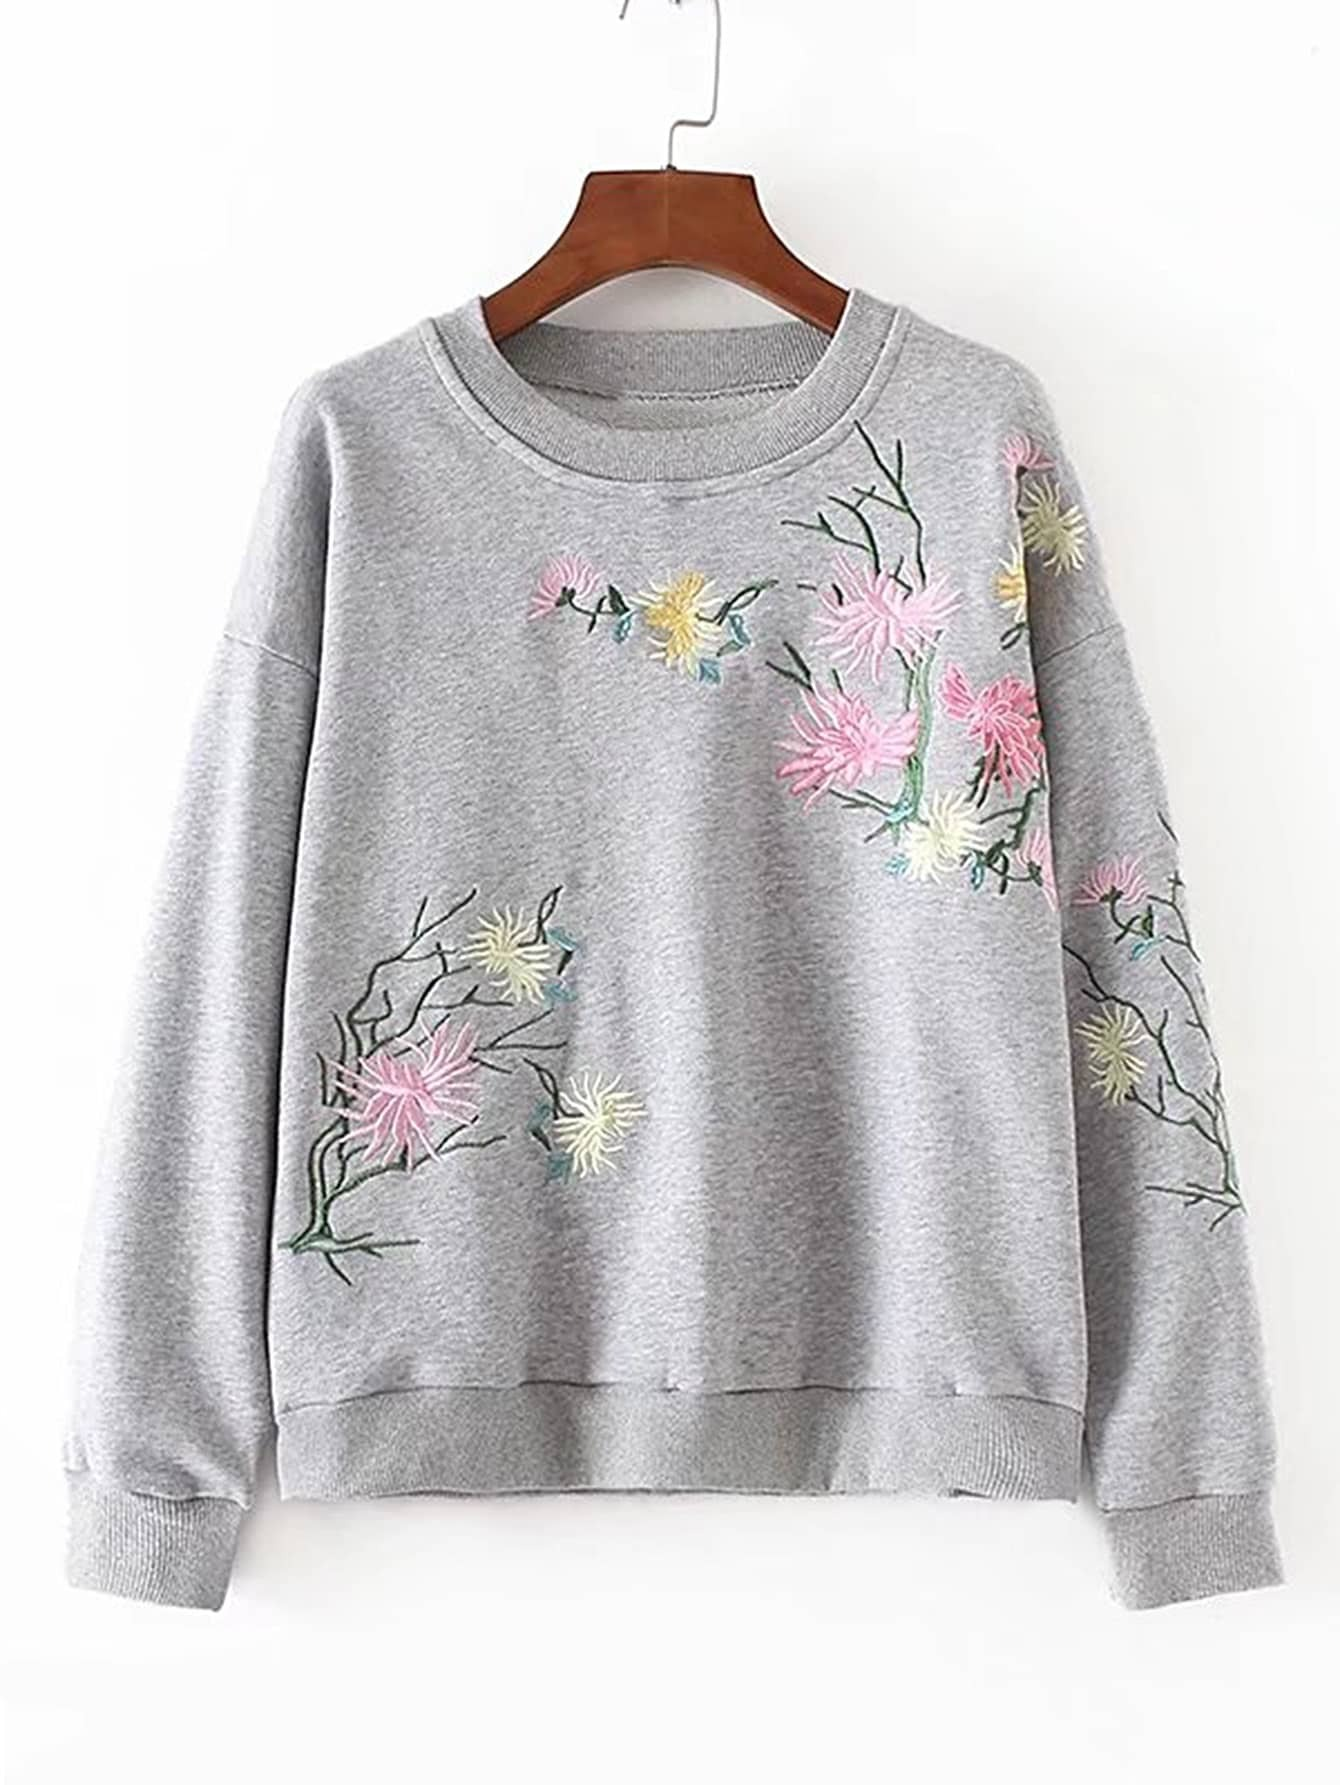 Drop Shoulder Flower Embroidery Sweatshirt hooded drop shoulder patch sweatshirt